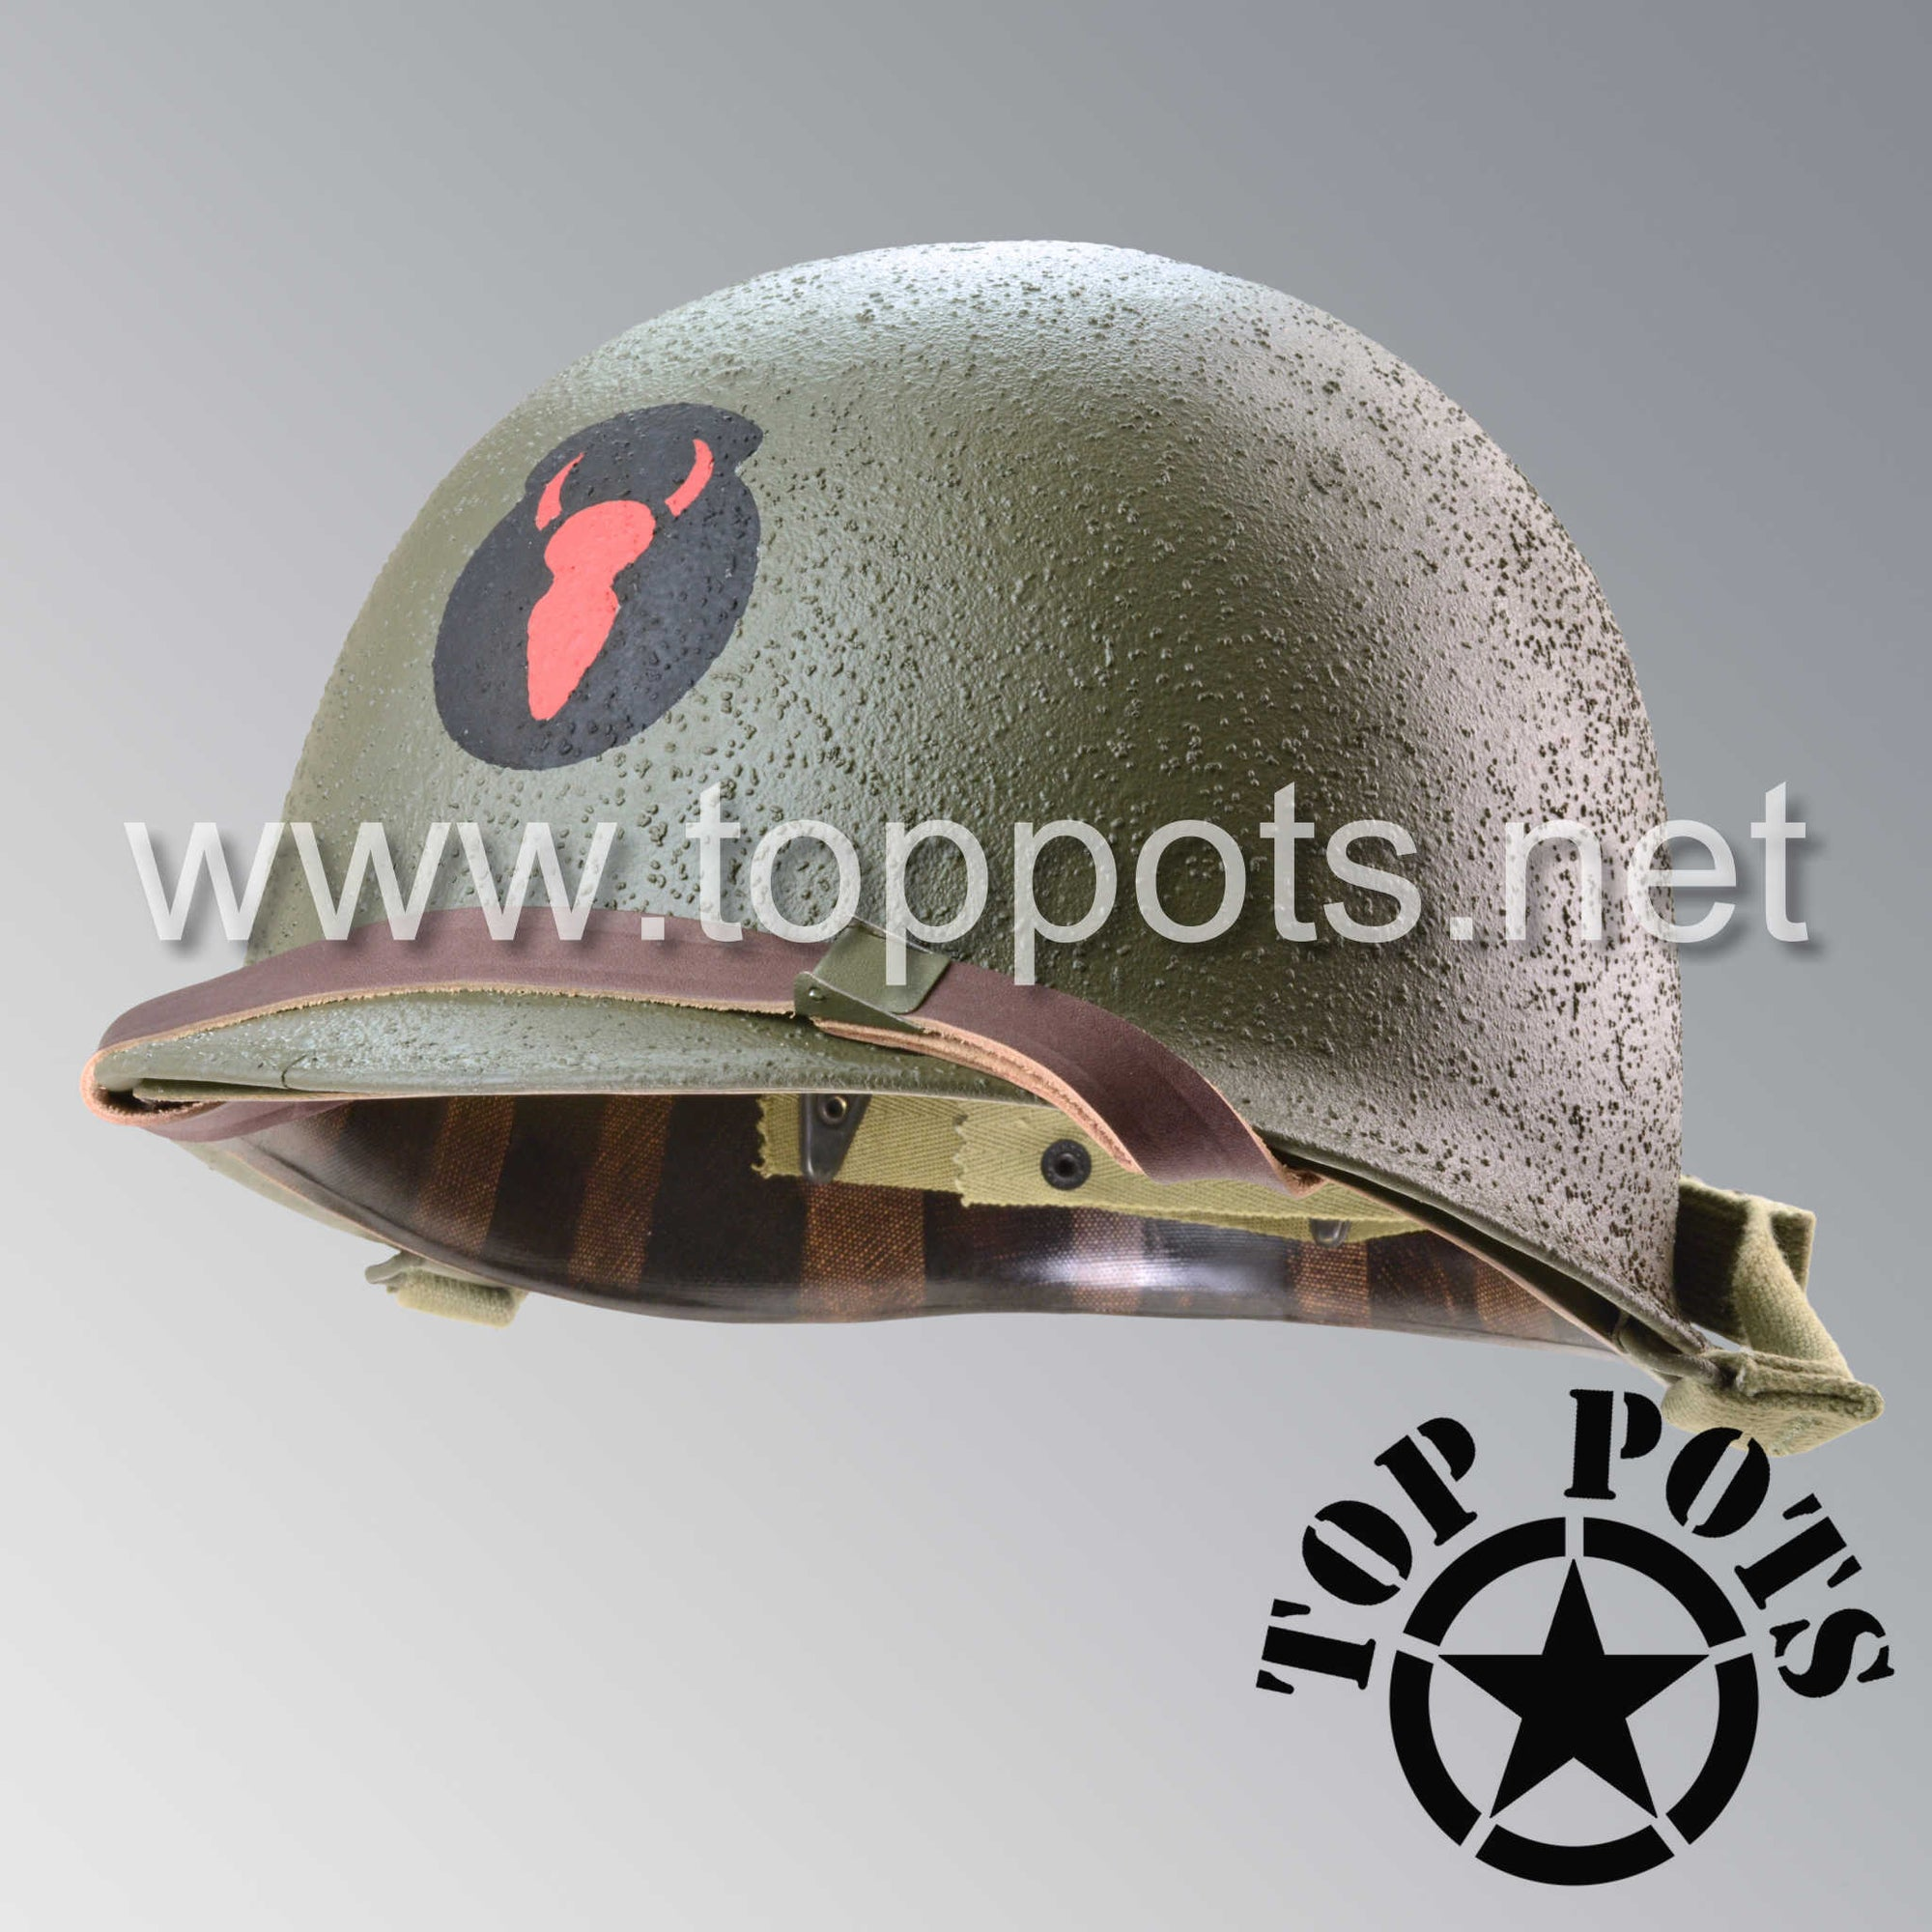 Image 1 of WWII US Army Restored Original M1 Infantry Helmet Swivel Bale Shell and Liner with 34th Infantry Division Emblem